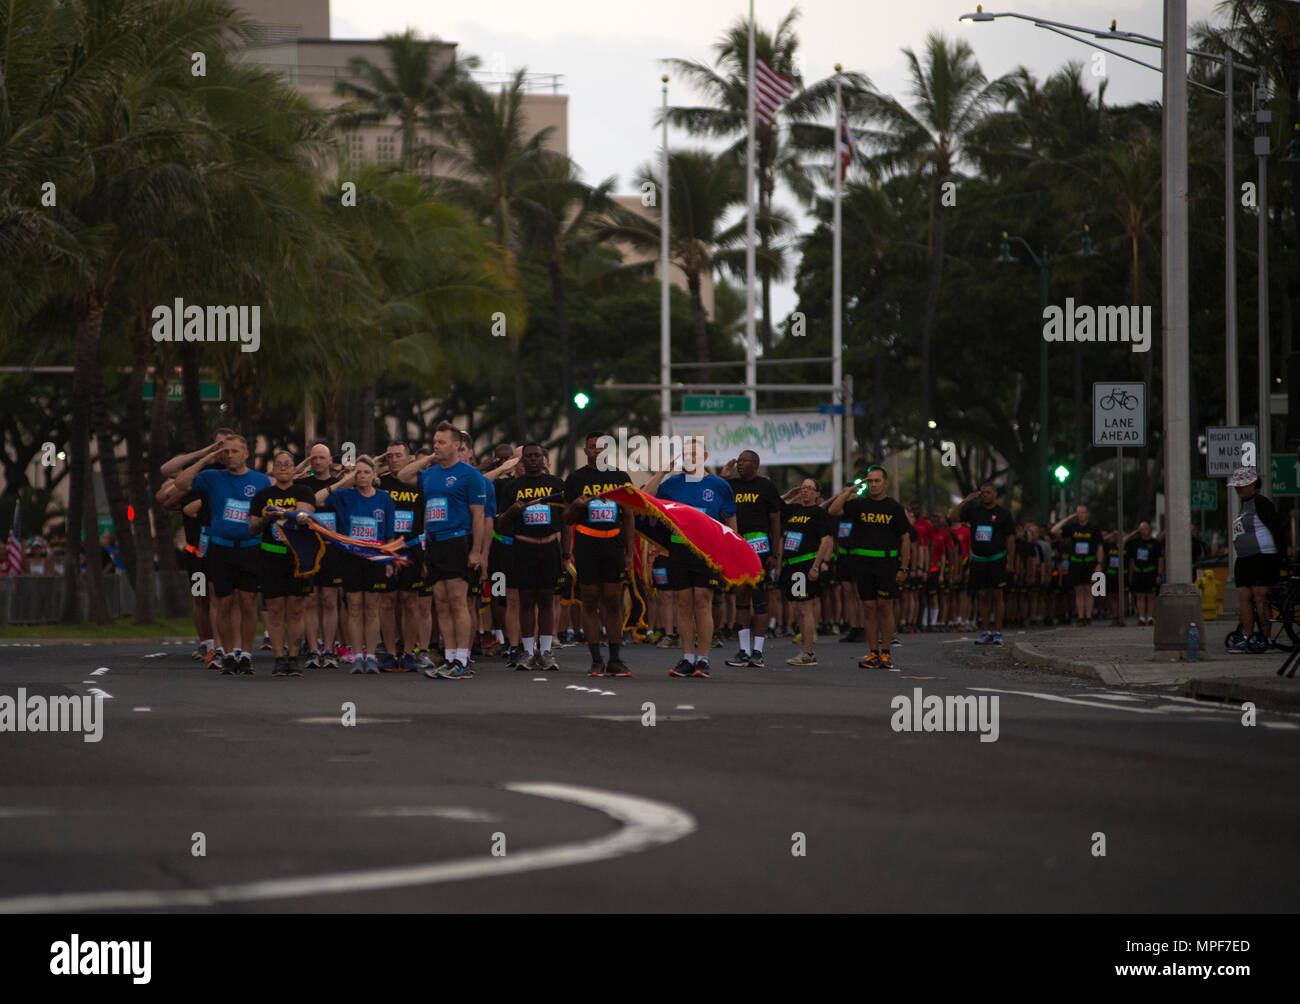 "170220-N-WC566-004 HONOLULU (Feb. 20, 2017)   Service members, representing the 'Sounds of Freedom' team, salute during the National Anthem before the Great Aloha Run, held in Honolulu, Feb. 20. The ""Sounds of Freedom"" team runs in a formation with their unit, consisting of service men and women from all branches of service. The Great Aloha Run is 8.15 miles and is an annual charity event. A portion of the proceeds benefits local military assistance programs. (U.S. Navy photo by Mass Communication Specialist 2nd Class Gabrielle Joyner/Released) - Stock Image"